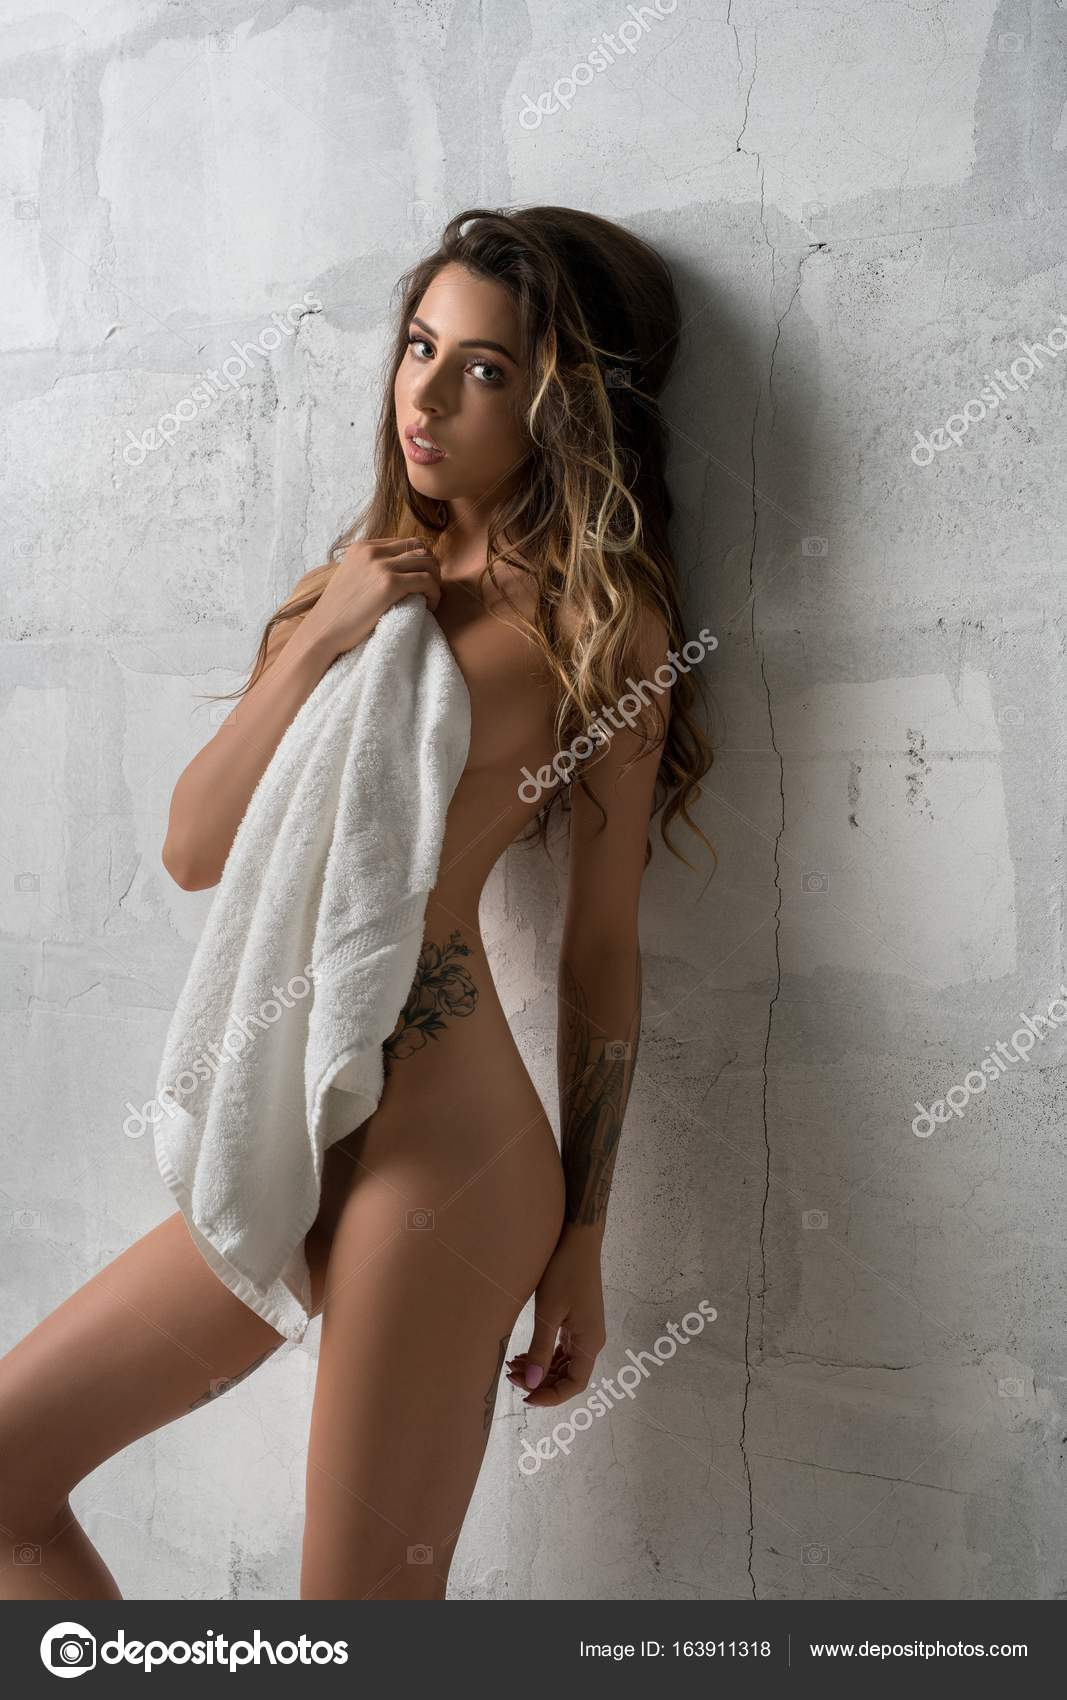 Towel girl nude, naked smurfette pussy